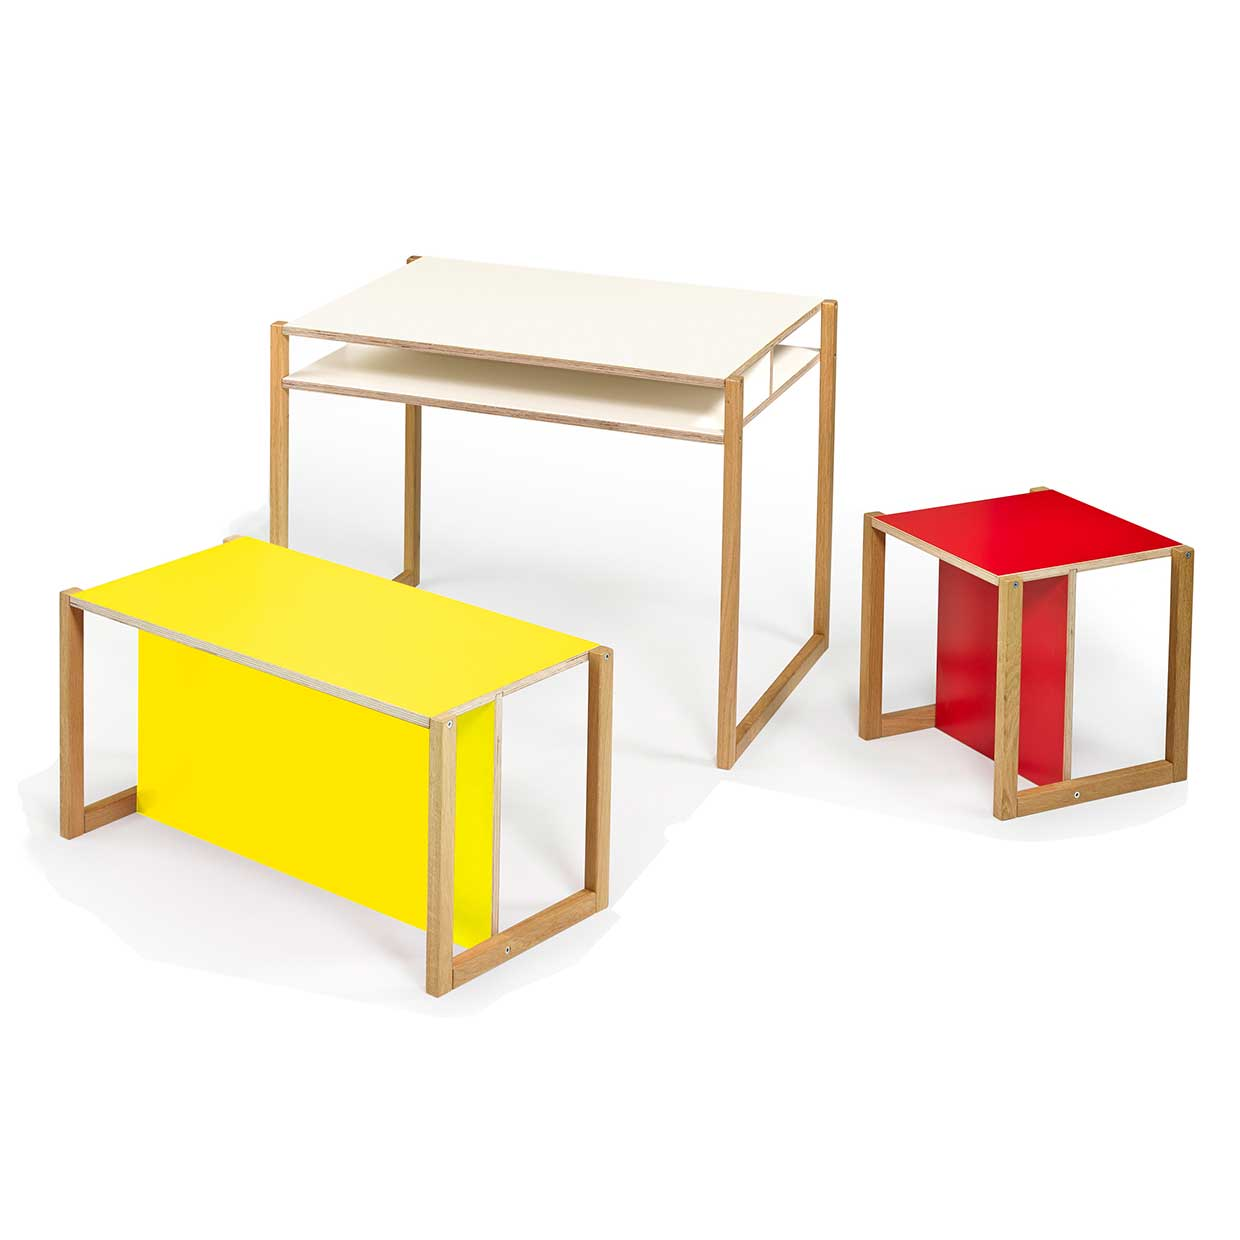 Jynx series growing furniture by daniel hahnemann